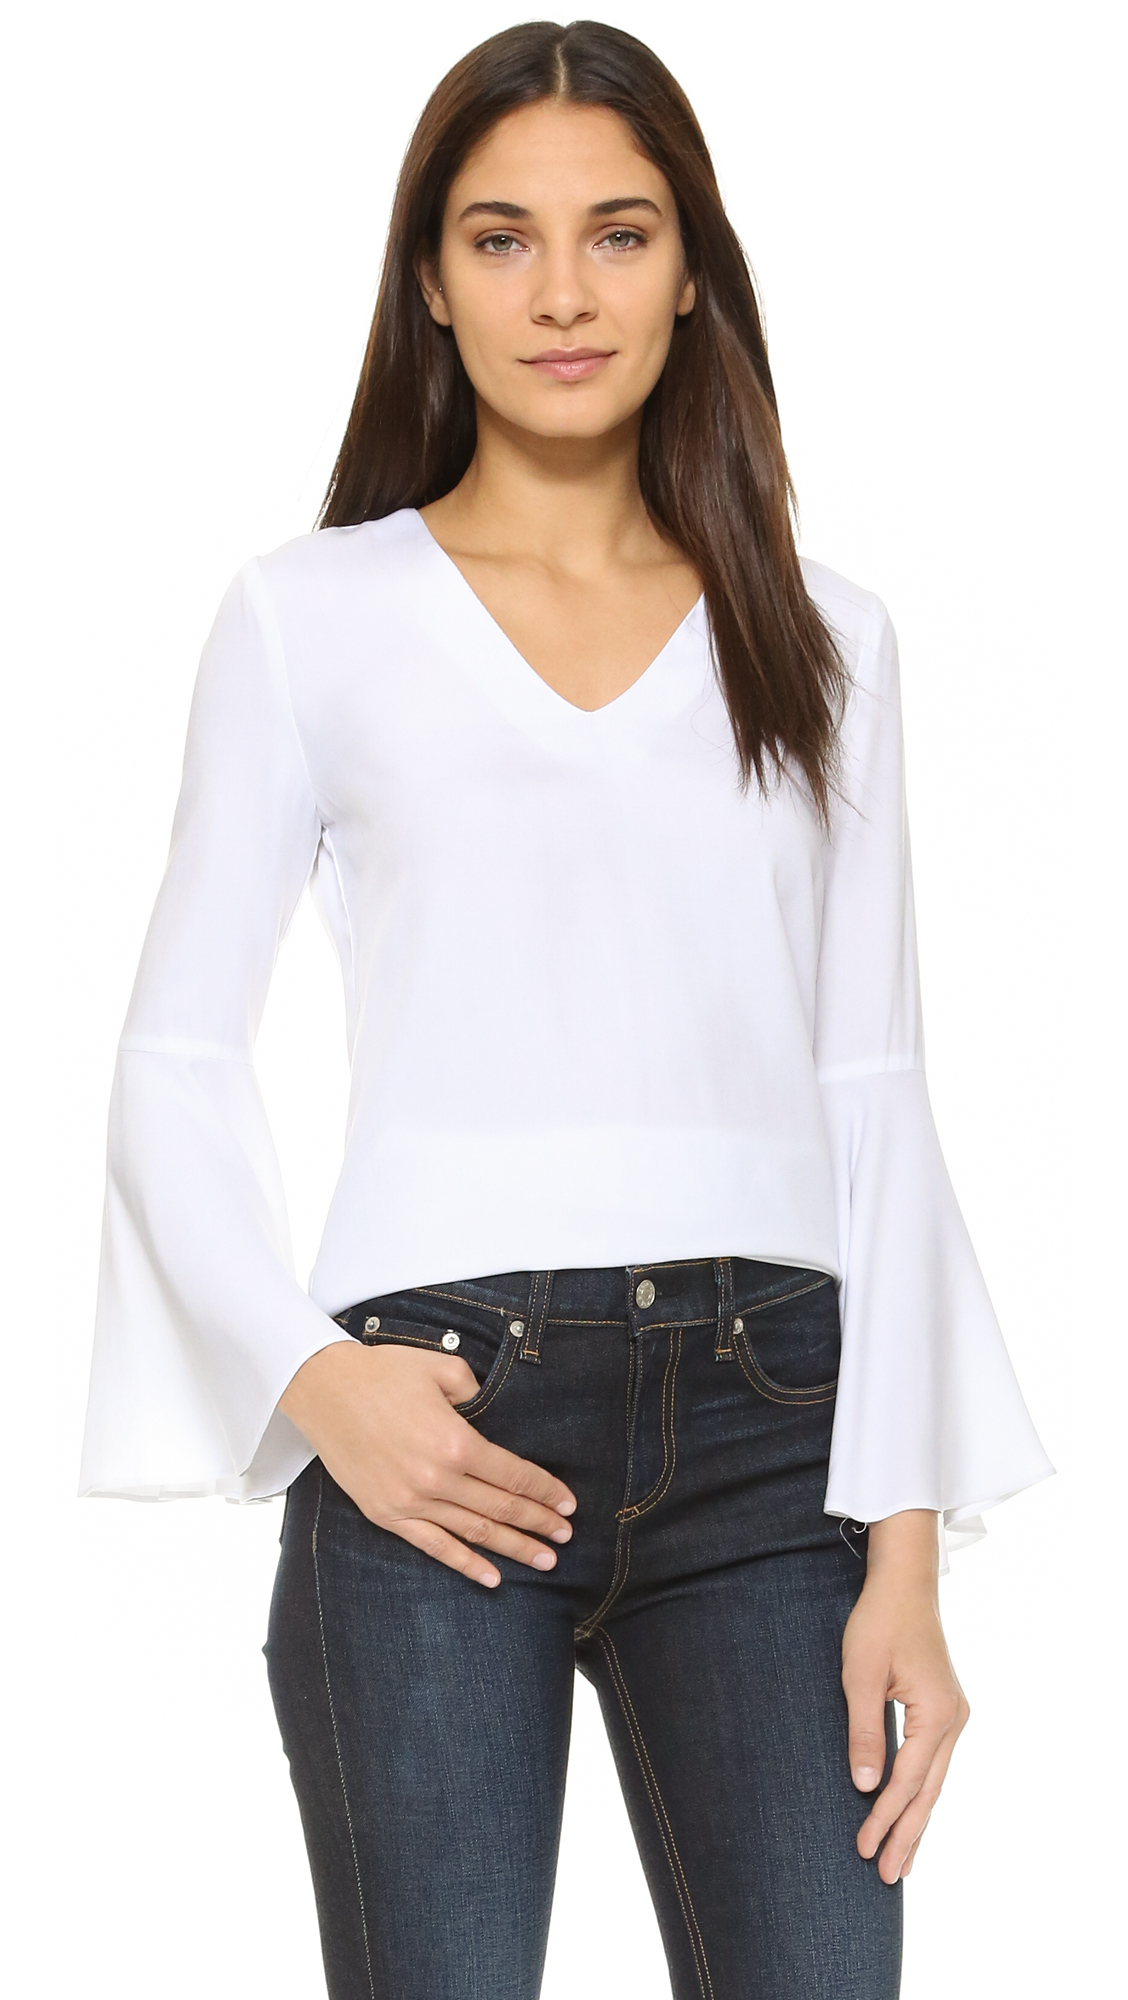 Long, fitted sleeves flare into flounced ruffle cuffs on this simple, yet dynamic WAYF blouse. V neckline. Curved hem. Fabric: Lightweight weave. 100% rayon. Dry clean. Made in the USA. Imported materials. Measurements Length: 27.25in / 69cm, from